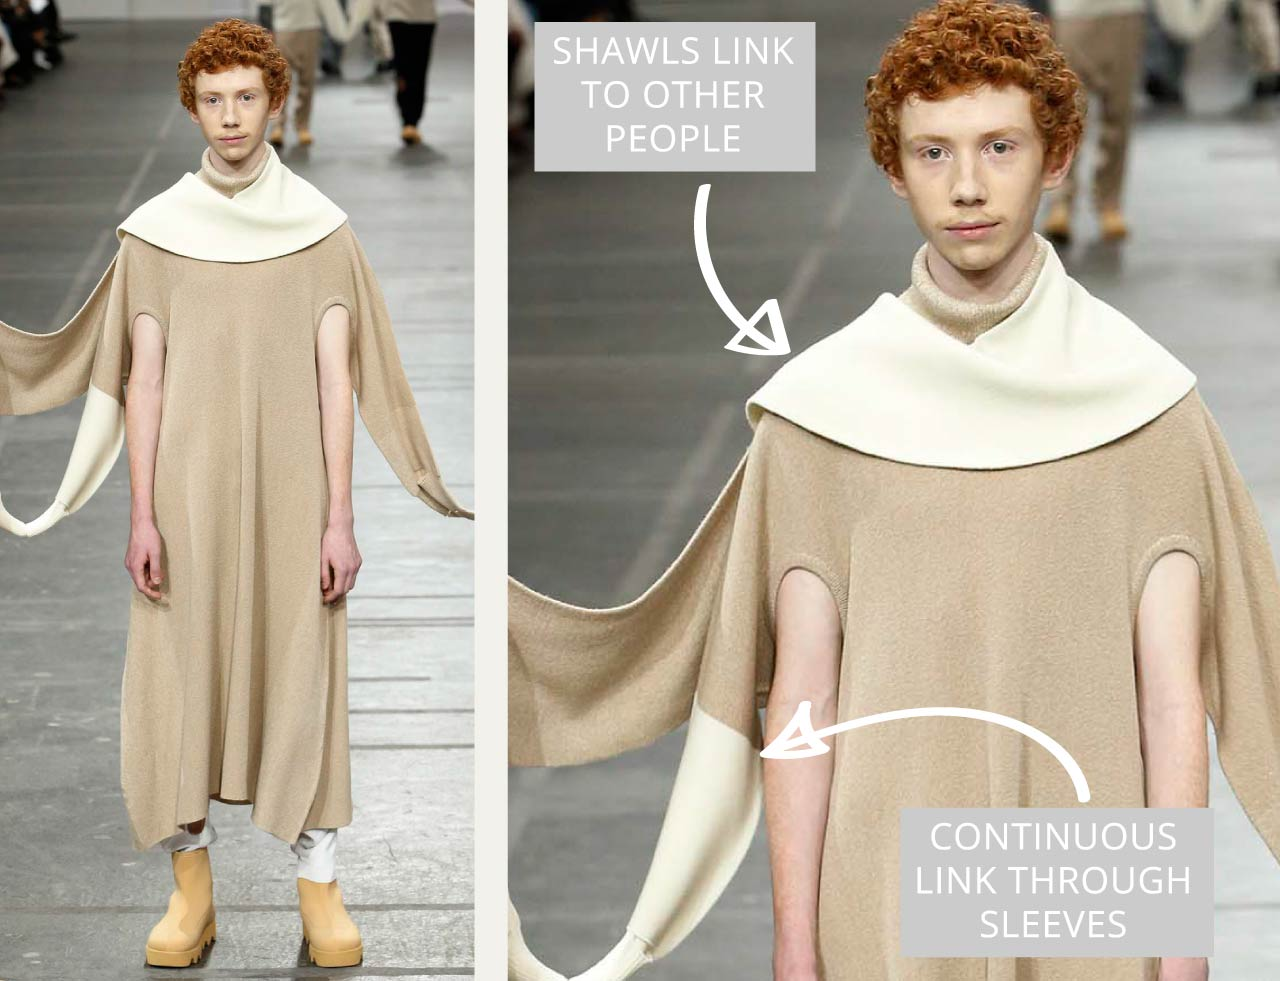 Connected Knits and Layering at Issey Miyake   The Cutting Class. Shawls and sleeves link to other wearers.